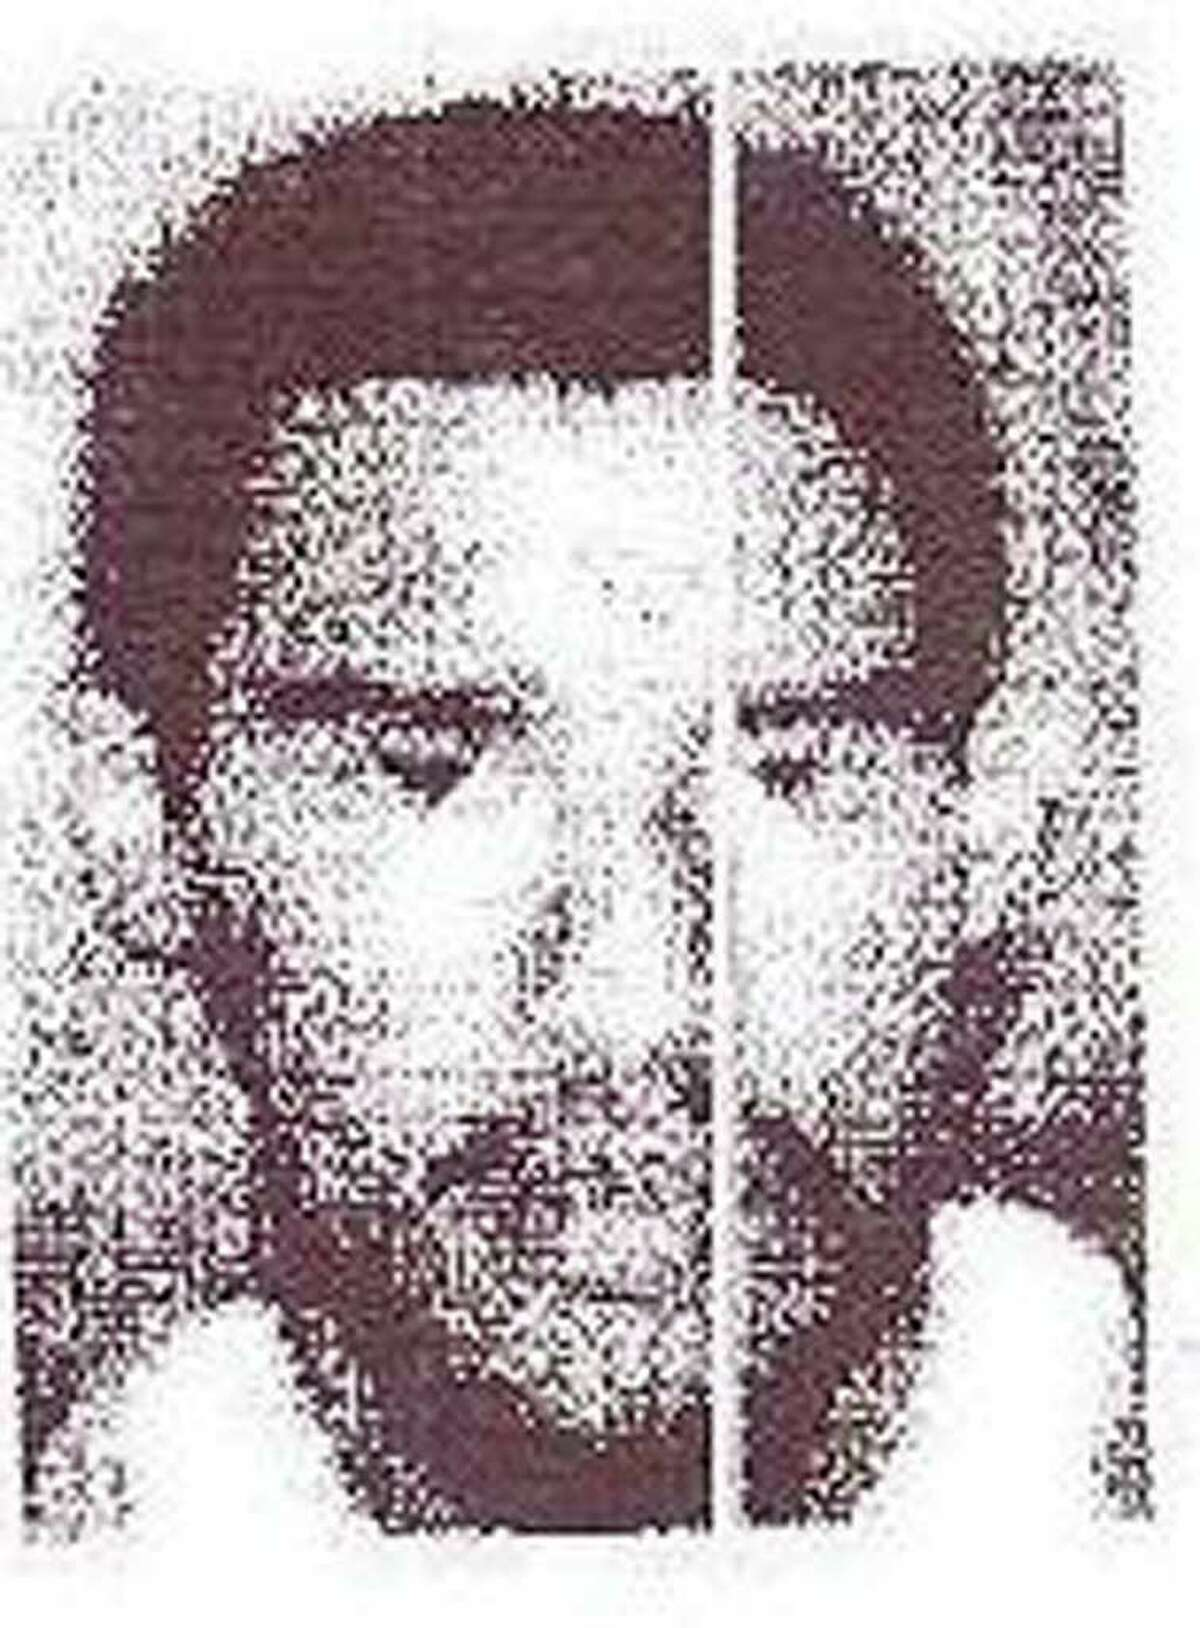 CORRECTS SOURCE OF IMAGE In this image displayed on Pakistan's Inter-Services Public Relations website shows al-Qaida member Younis al-Mauritani, seen in Islamabad, Pakistan on Monday, Sept 5, 2011. Working with the CIA, Pakistani spies arrested three members of al-Qaida, including al-Mauritani a top operative alleged to have been tasked by Osama bin Laden to target American economic interests around the world, Pakistan's army said Monday. (AP Photo/Inter-Services Public Relations)